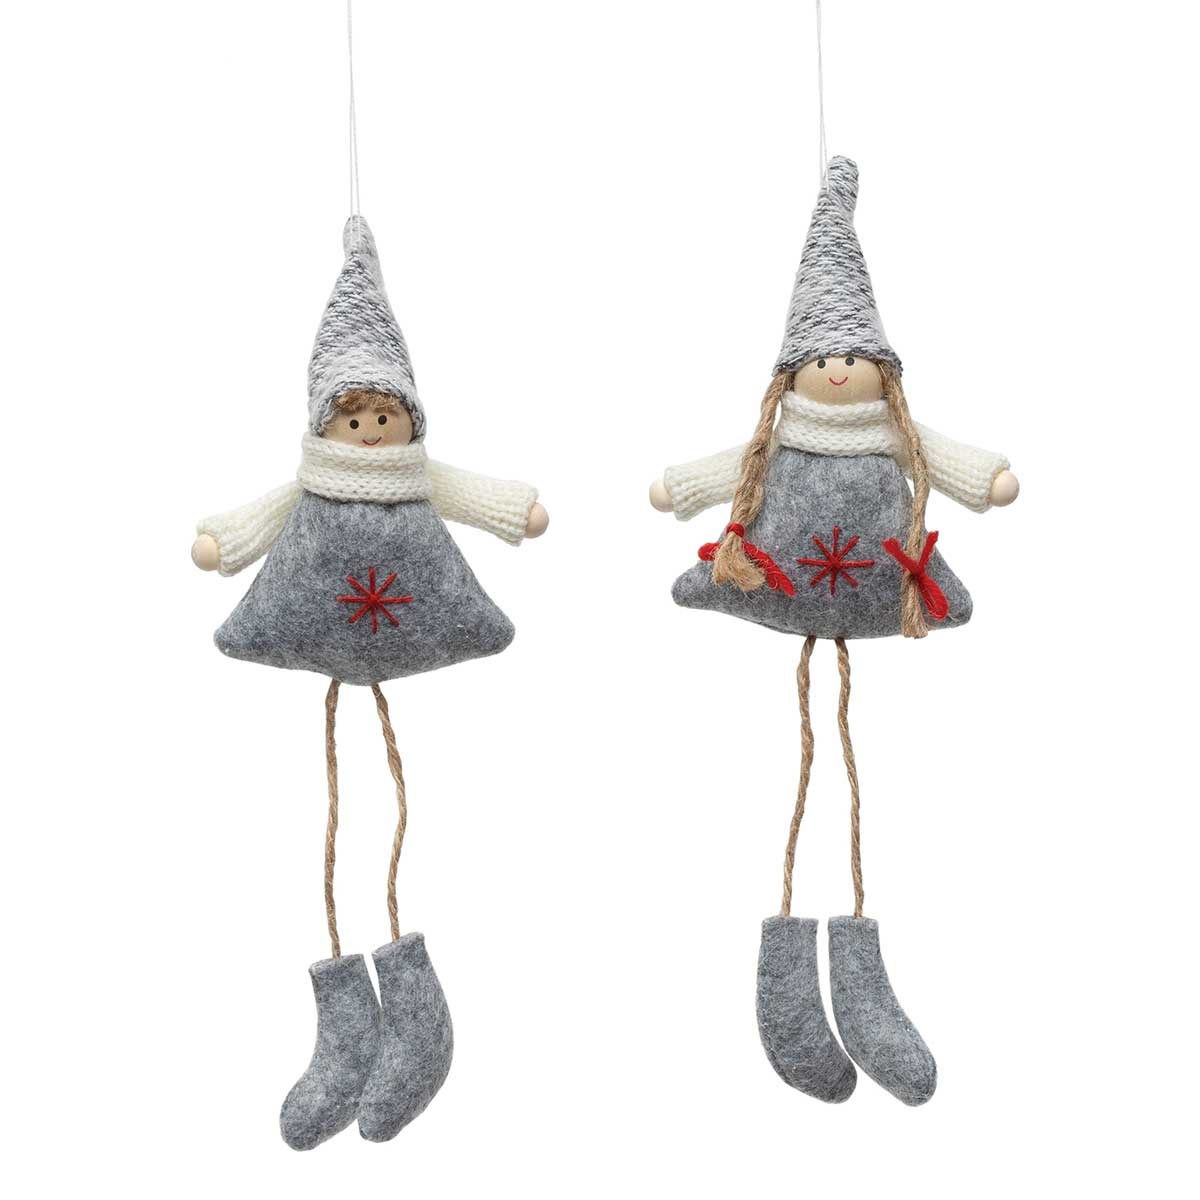 GREY BOY & GIRL ORNAMENT WITH SNOWFLAKE &